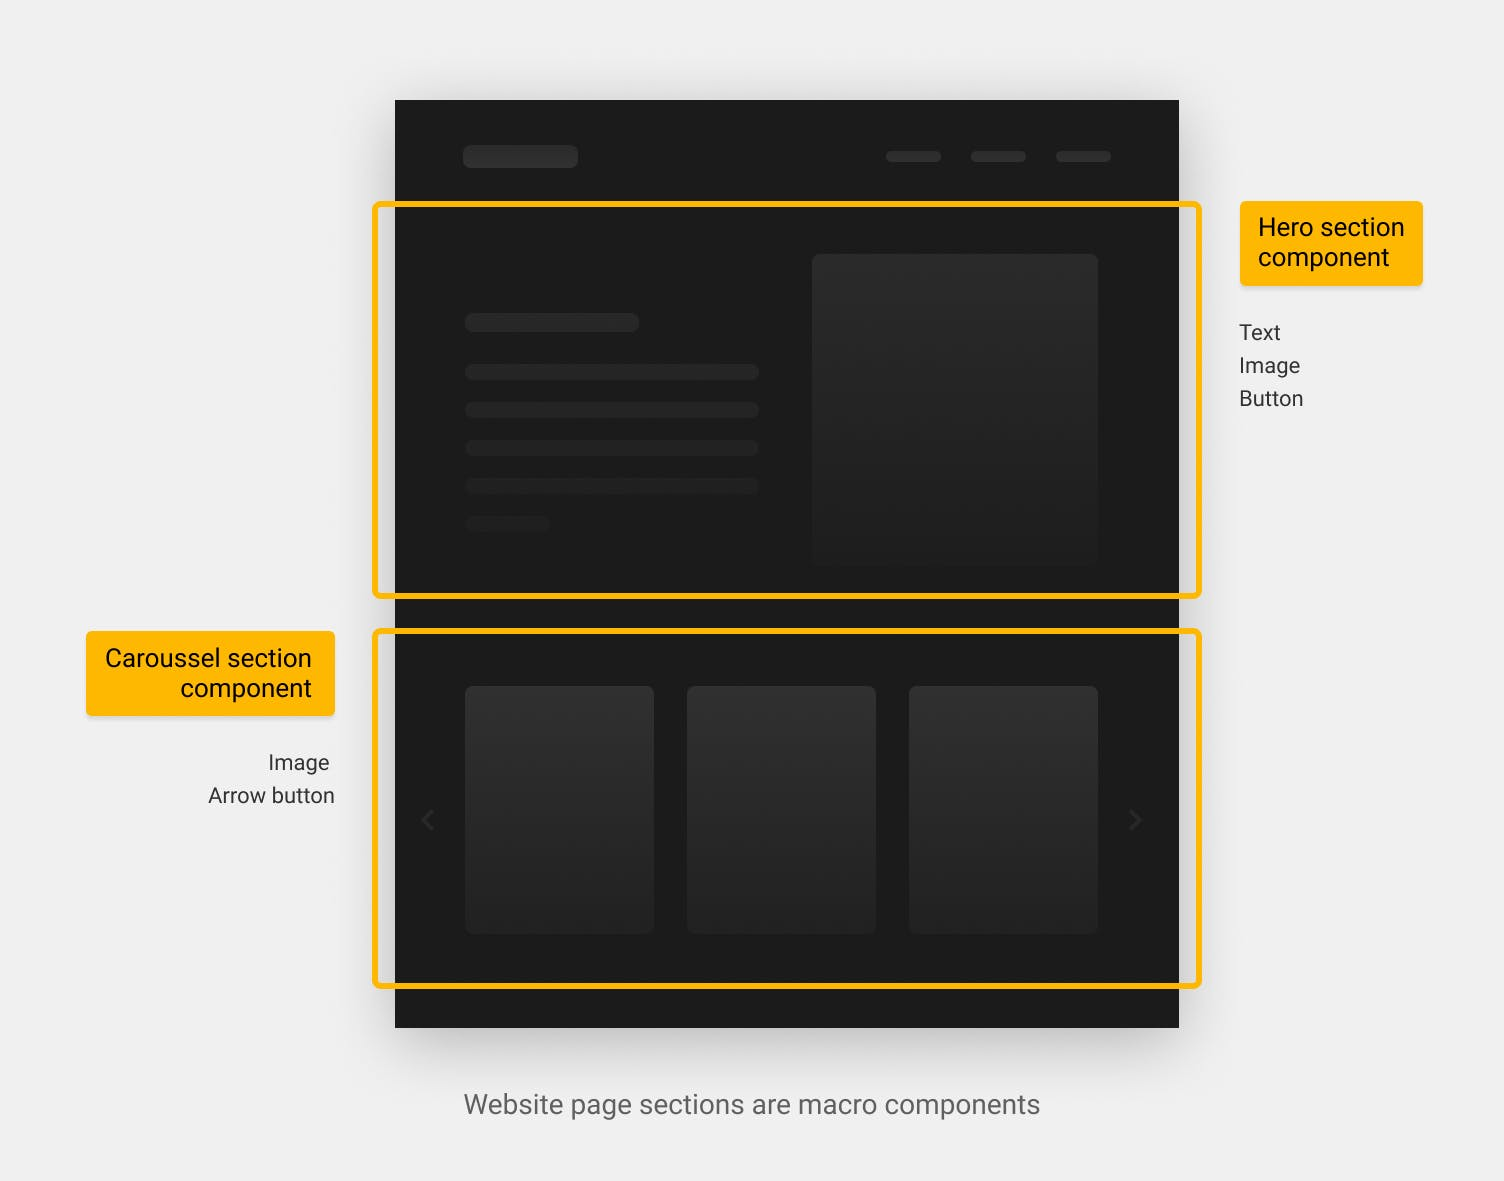 slice machine - website page sections are macro components